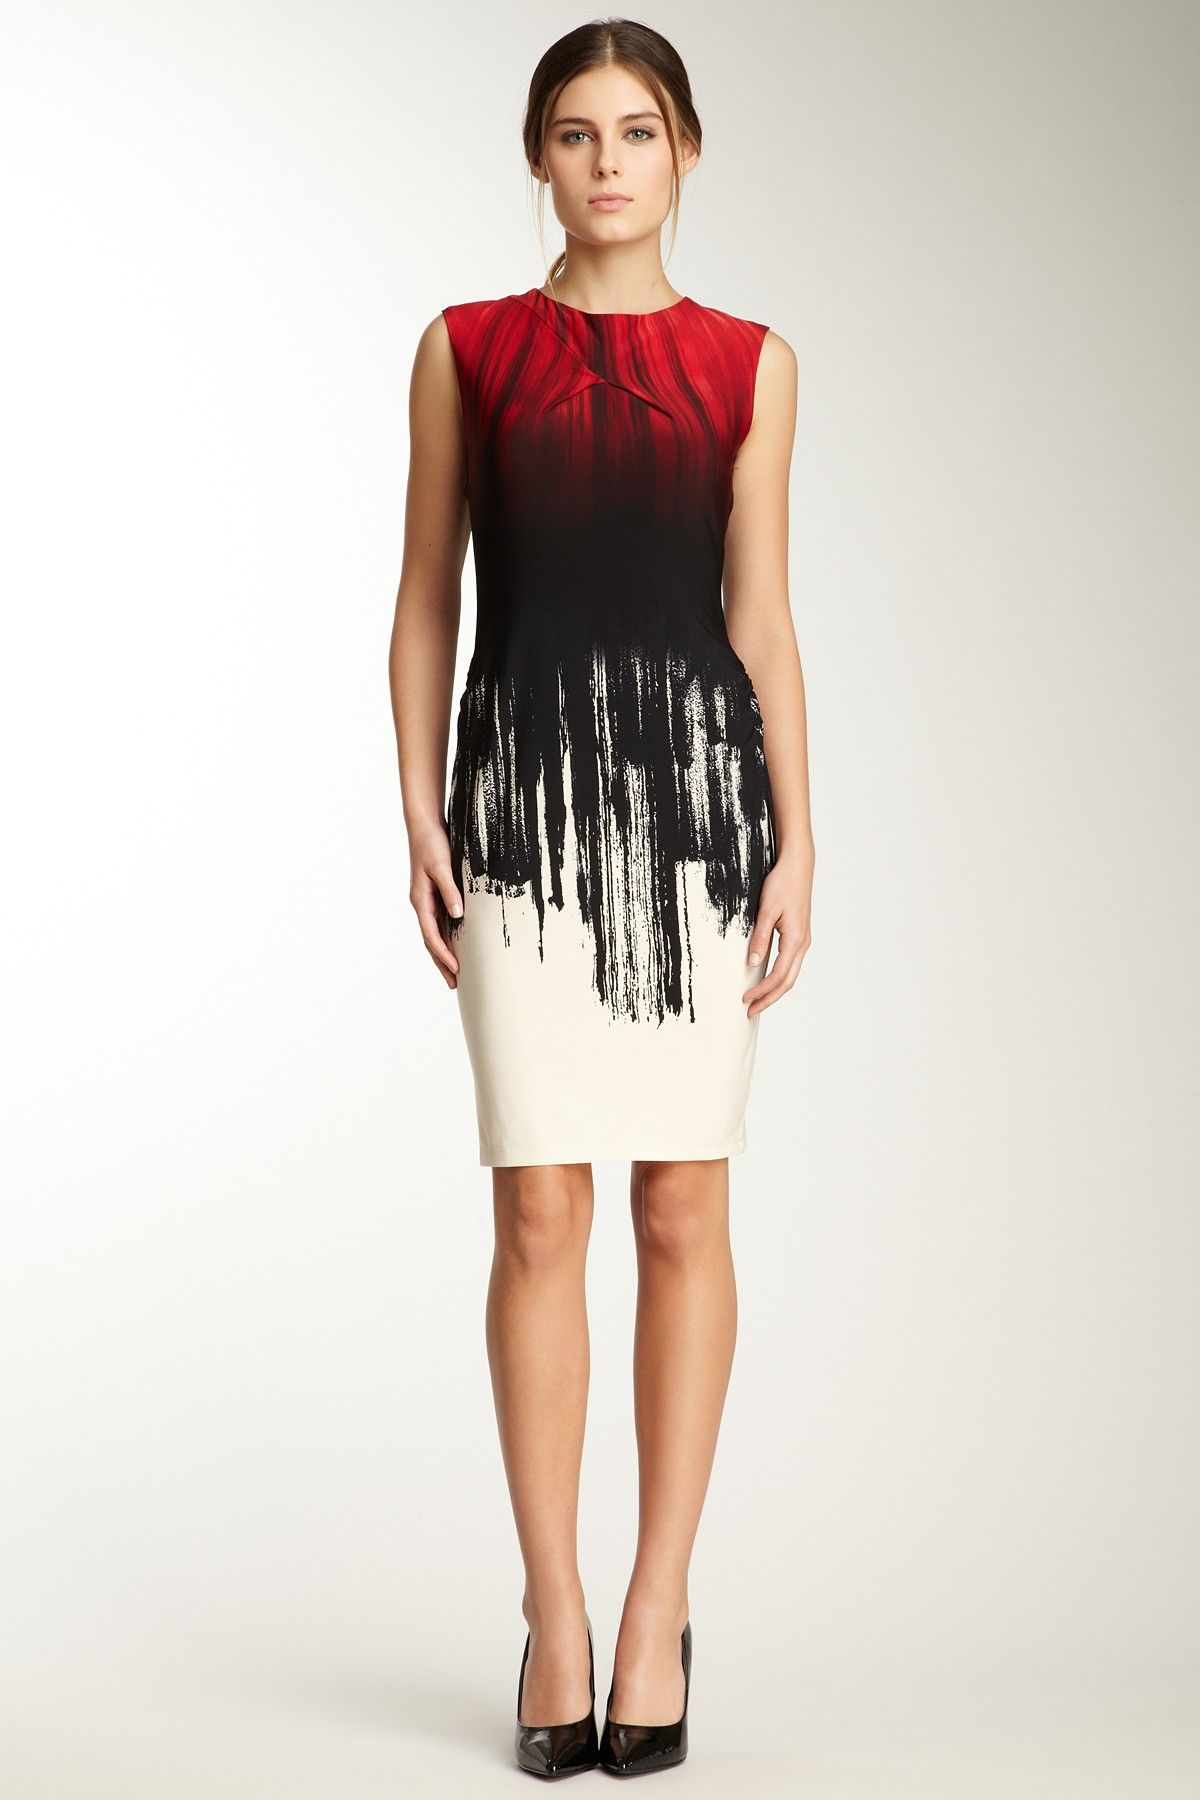 Red ombre dress by calvin klein want this calvin can dress me